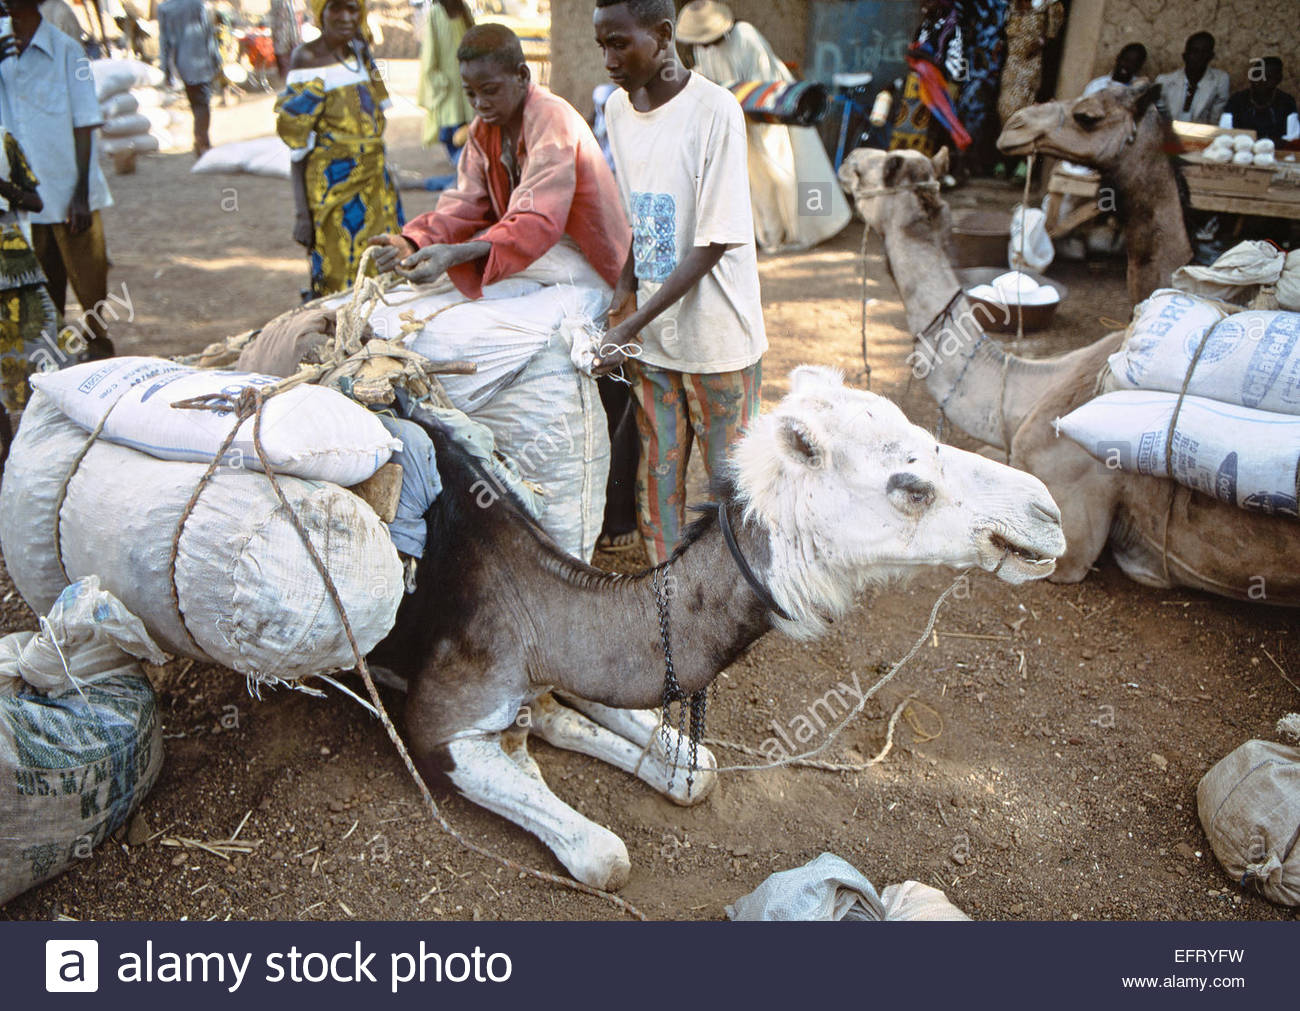 Republic Of Niger NER Western Africa Sahara Desert 2000 People Person Farming Agriculture Working Camel Camels - Stock Image